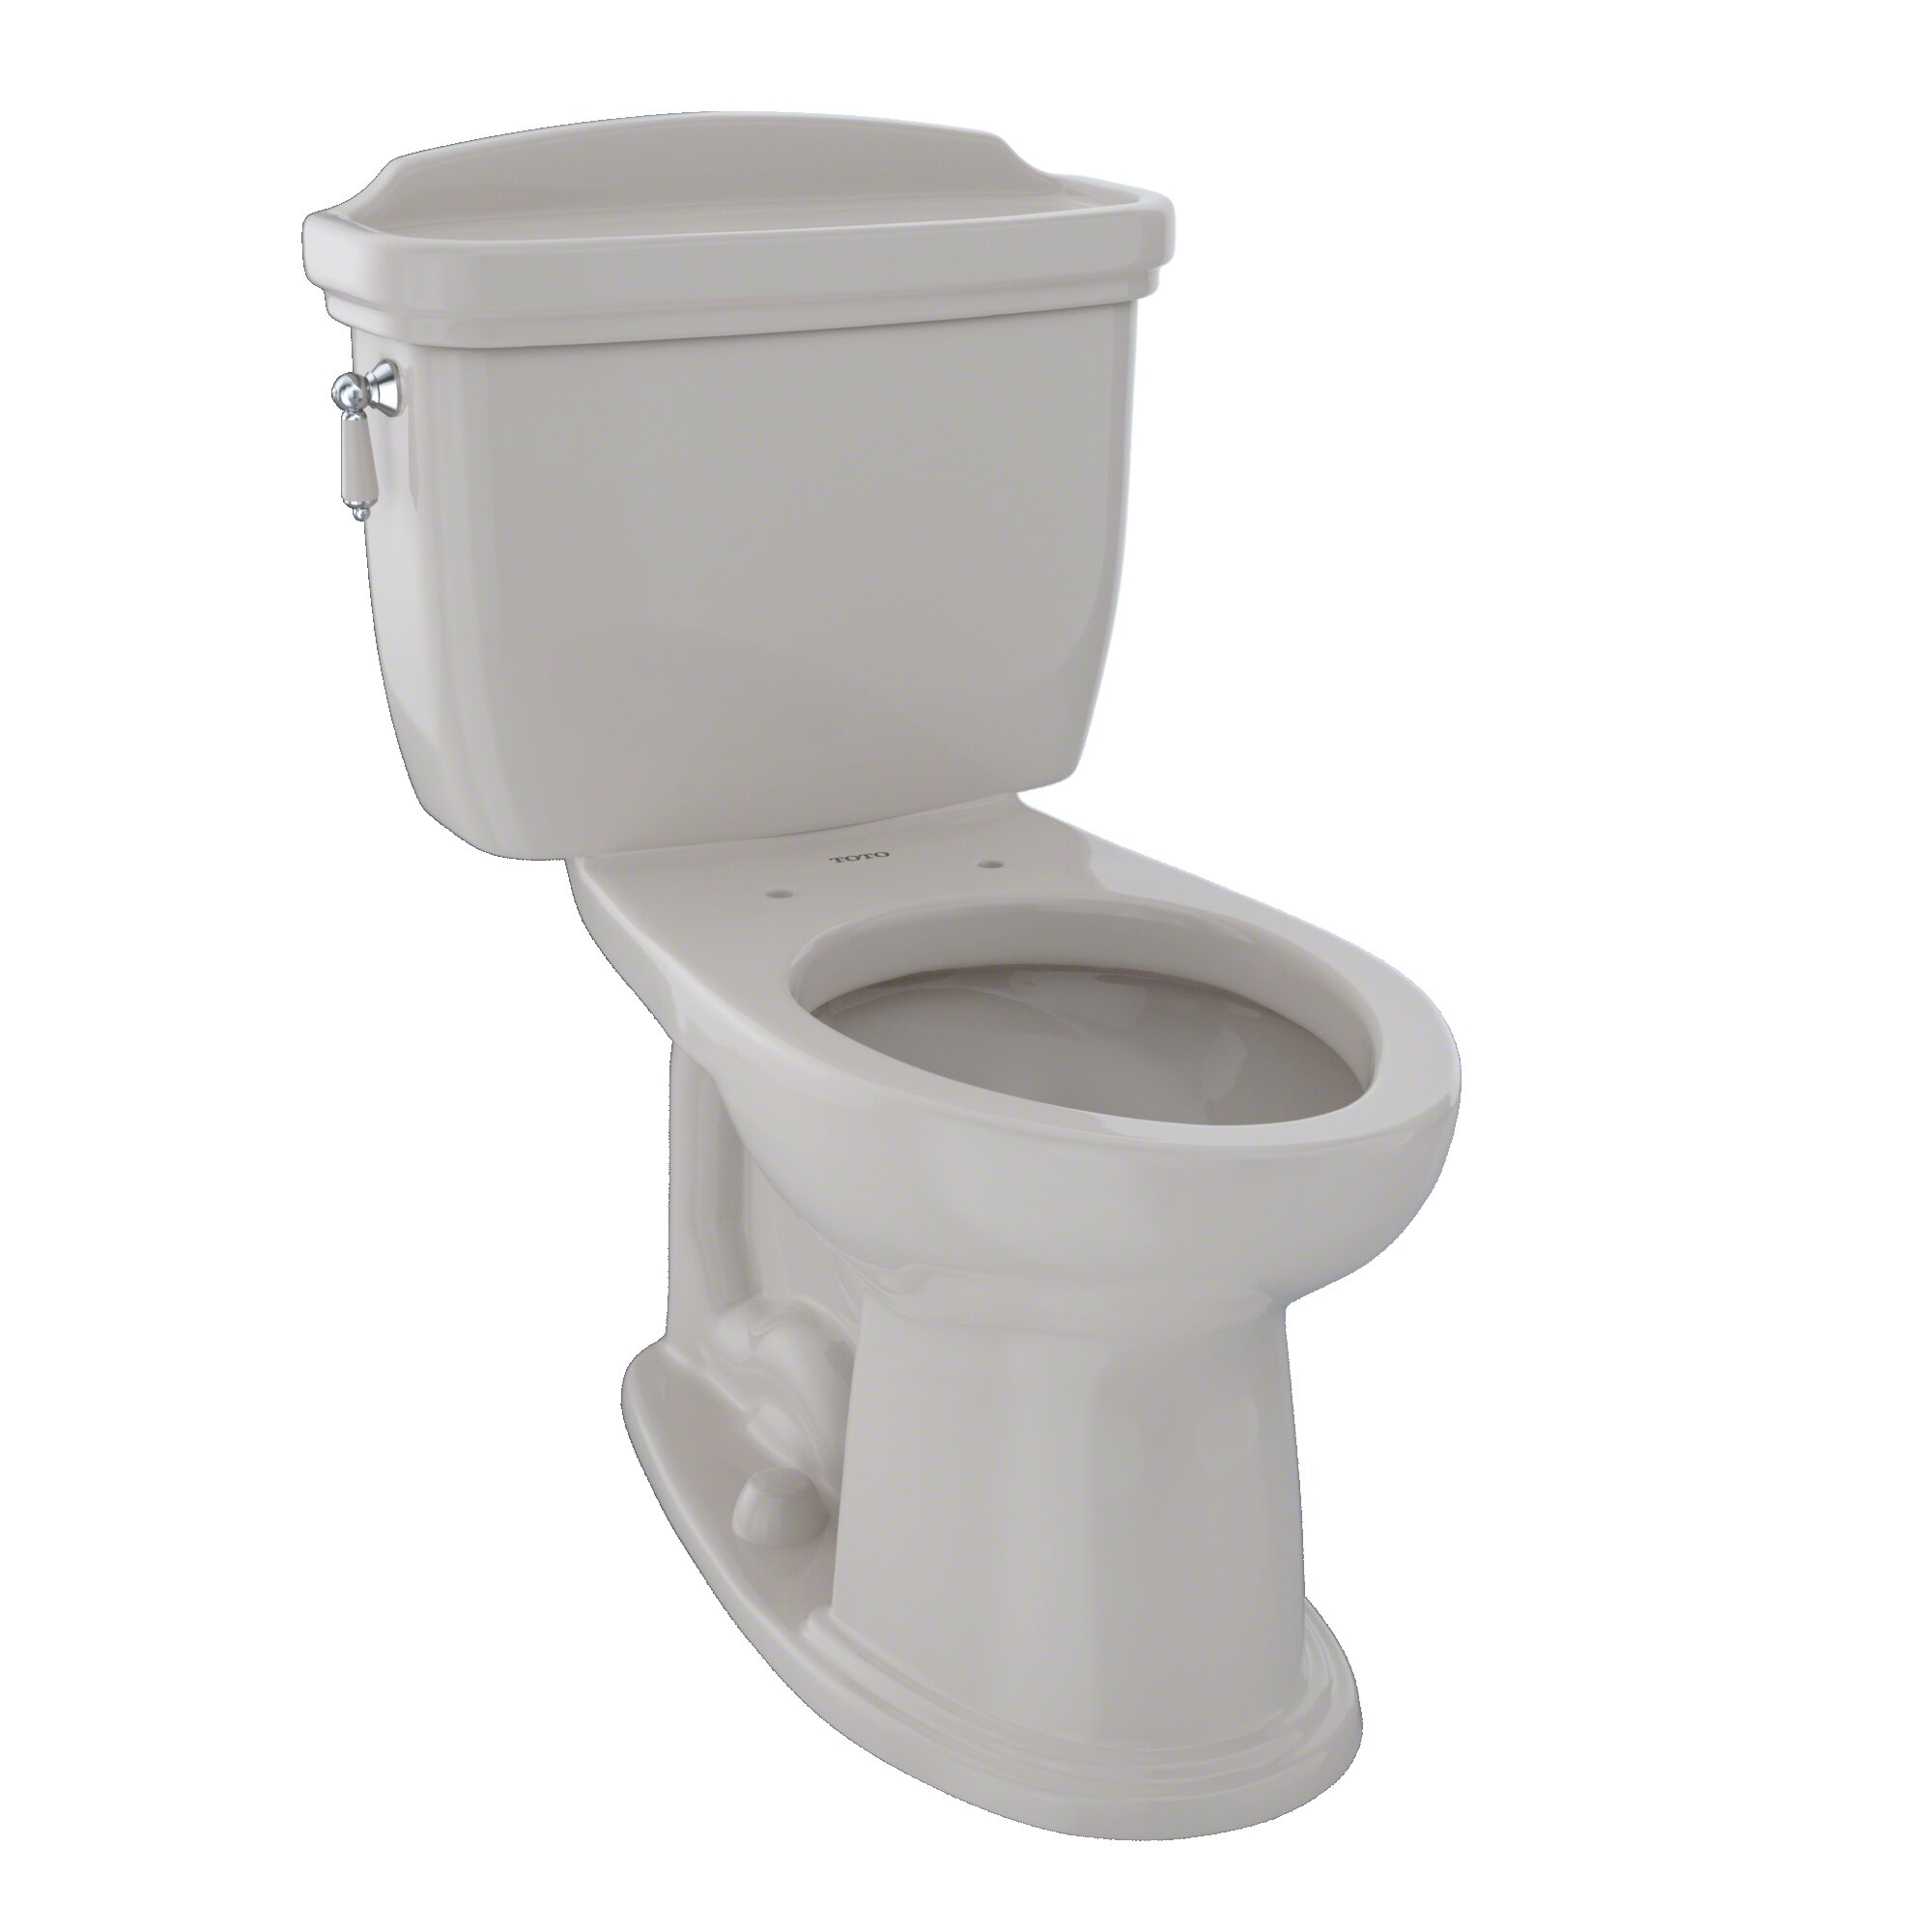 Phenomenal Dartmouth 1 6 Gpf Elongated Two Piece Toilet Seat Not Included Evergreenethics Interior Chair Design Evergreenethicsorg